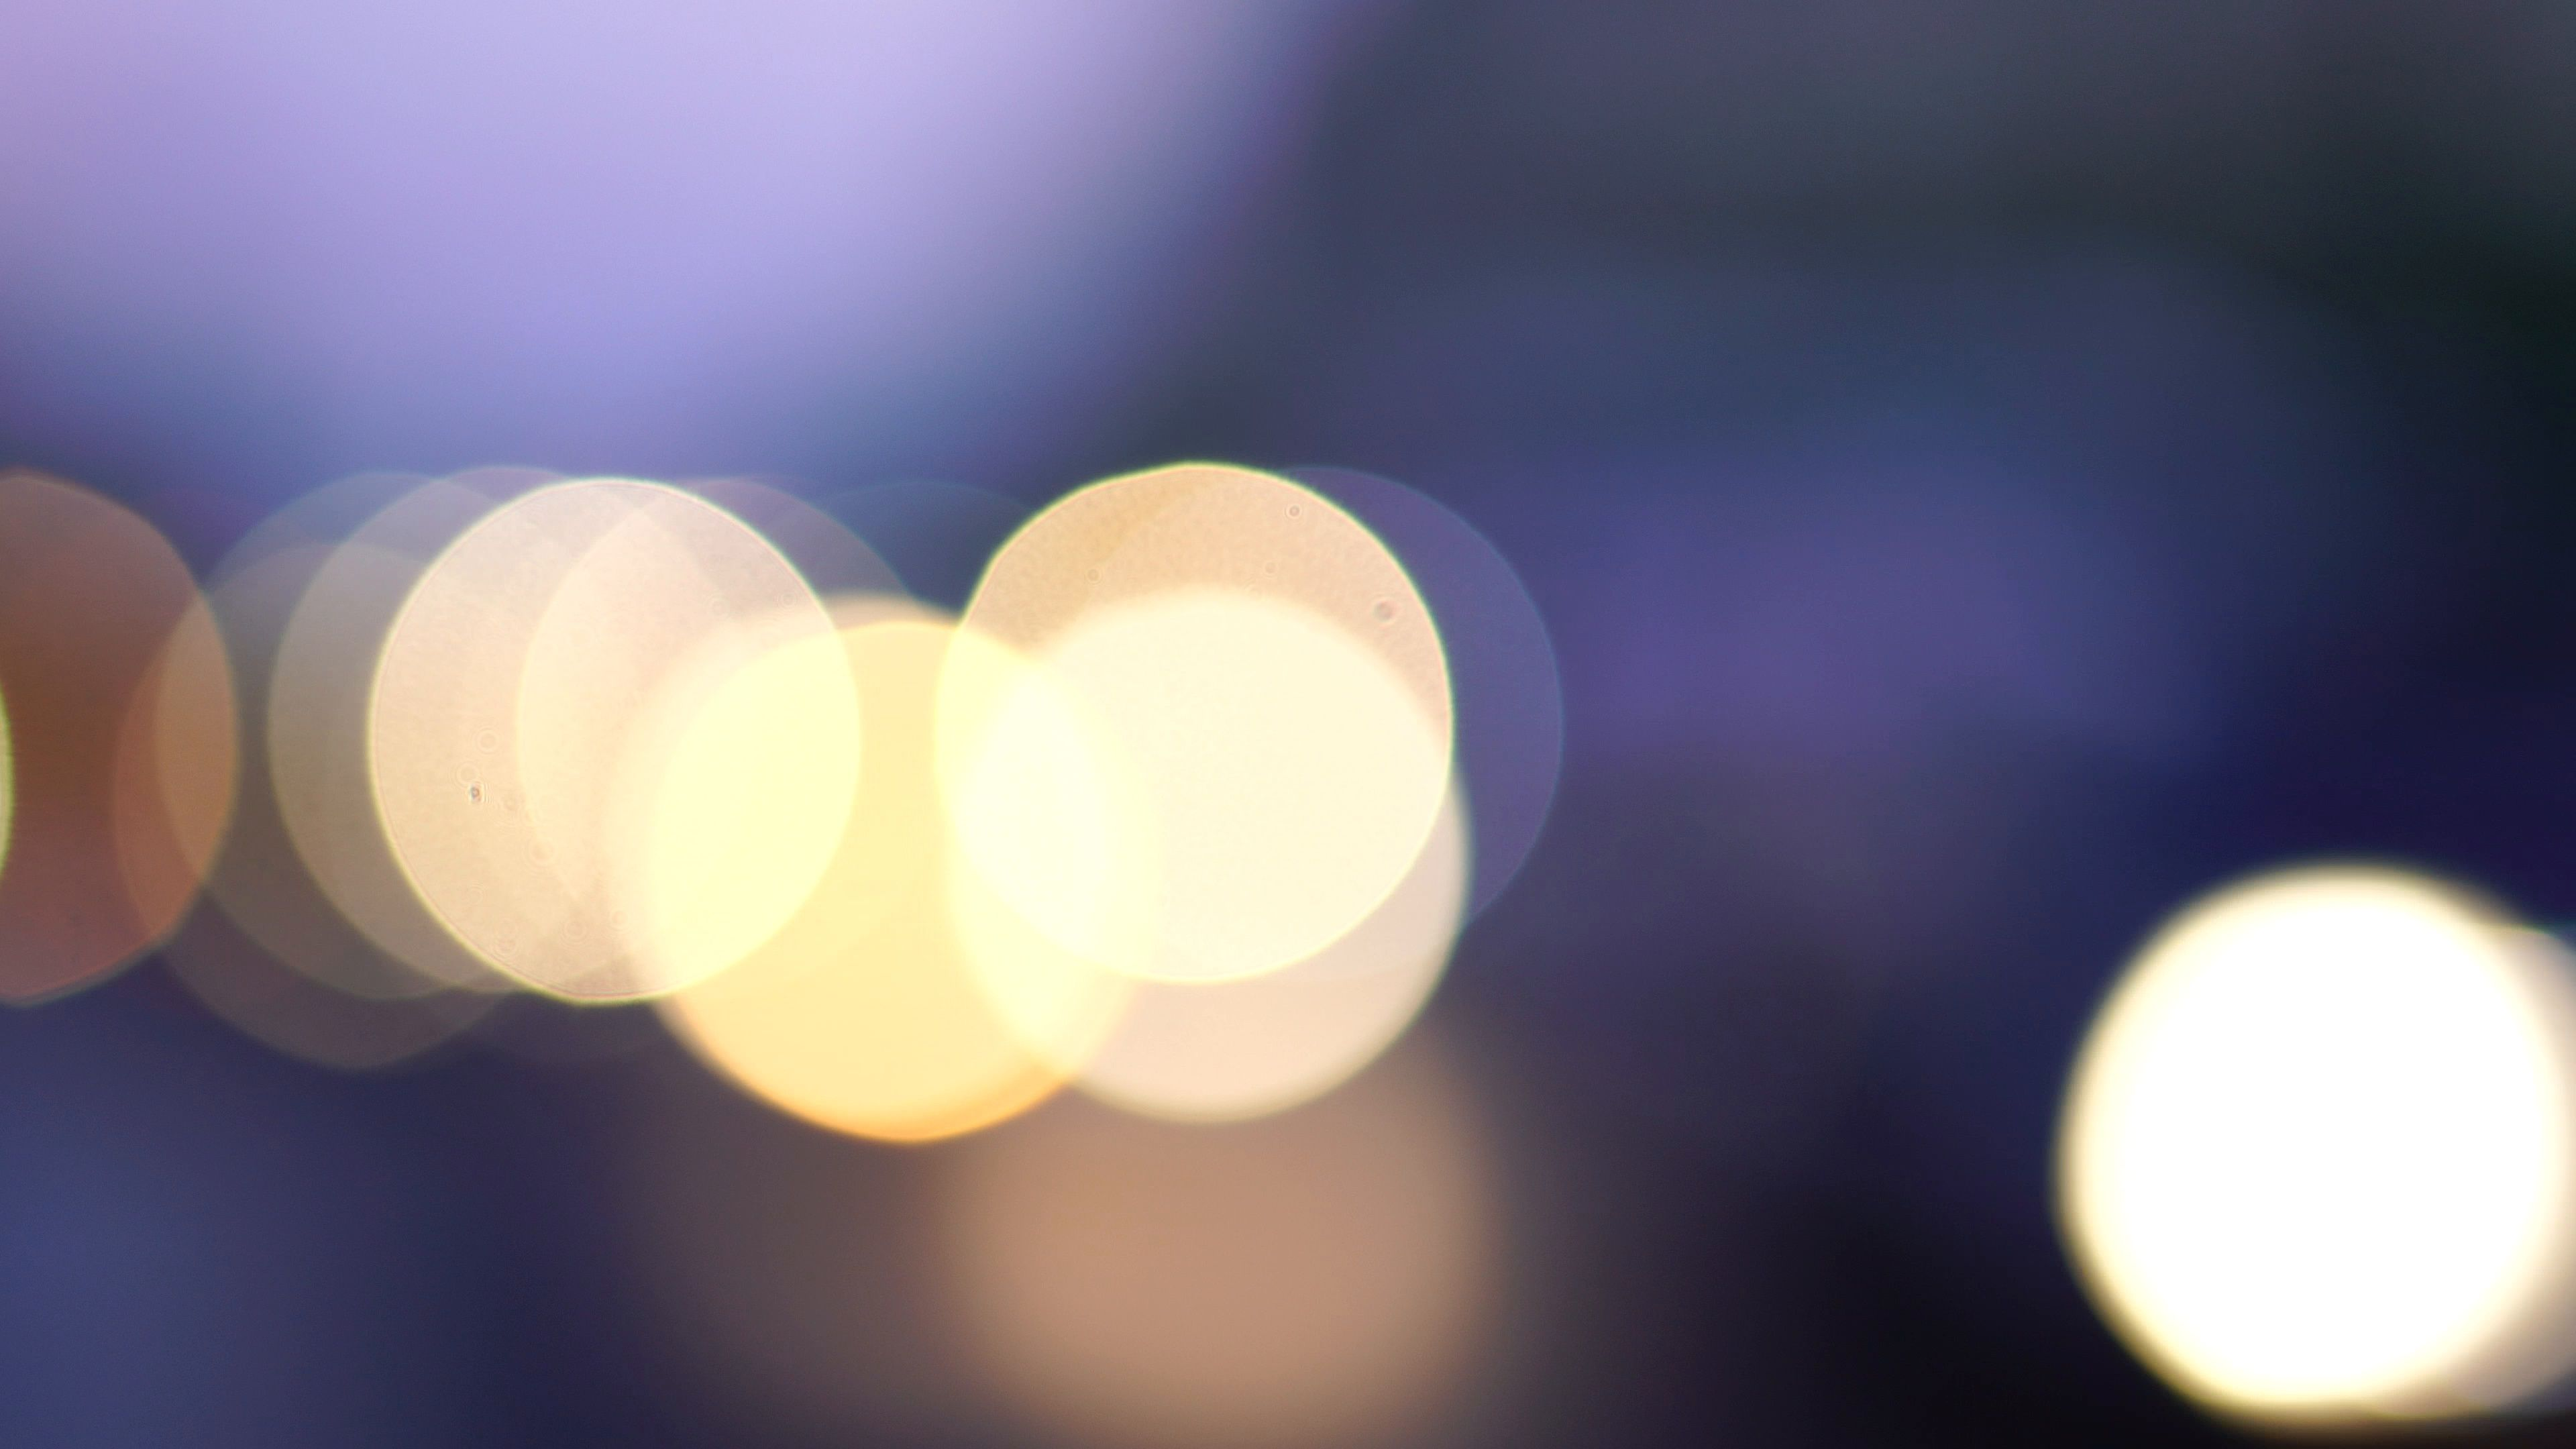 Blur Lights Effect Background Bokeh Multicolored Blur City Lights